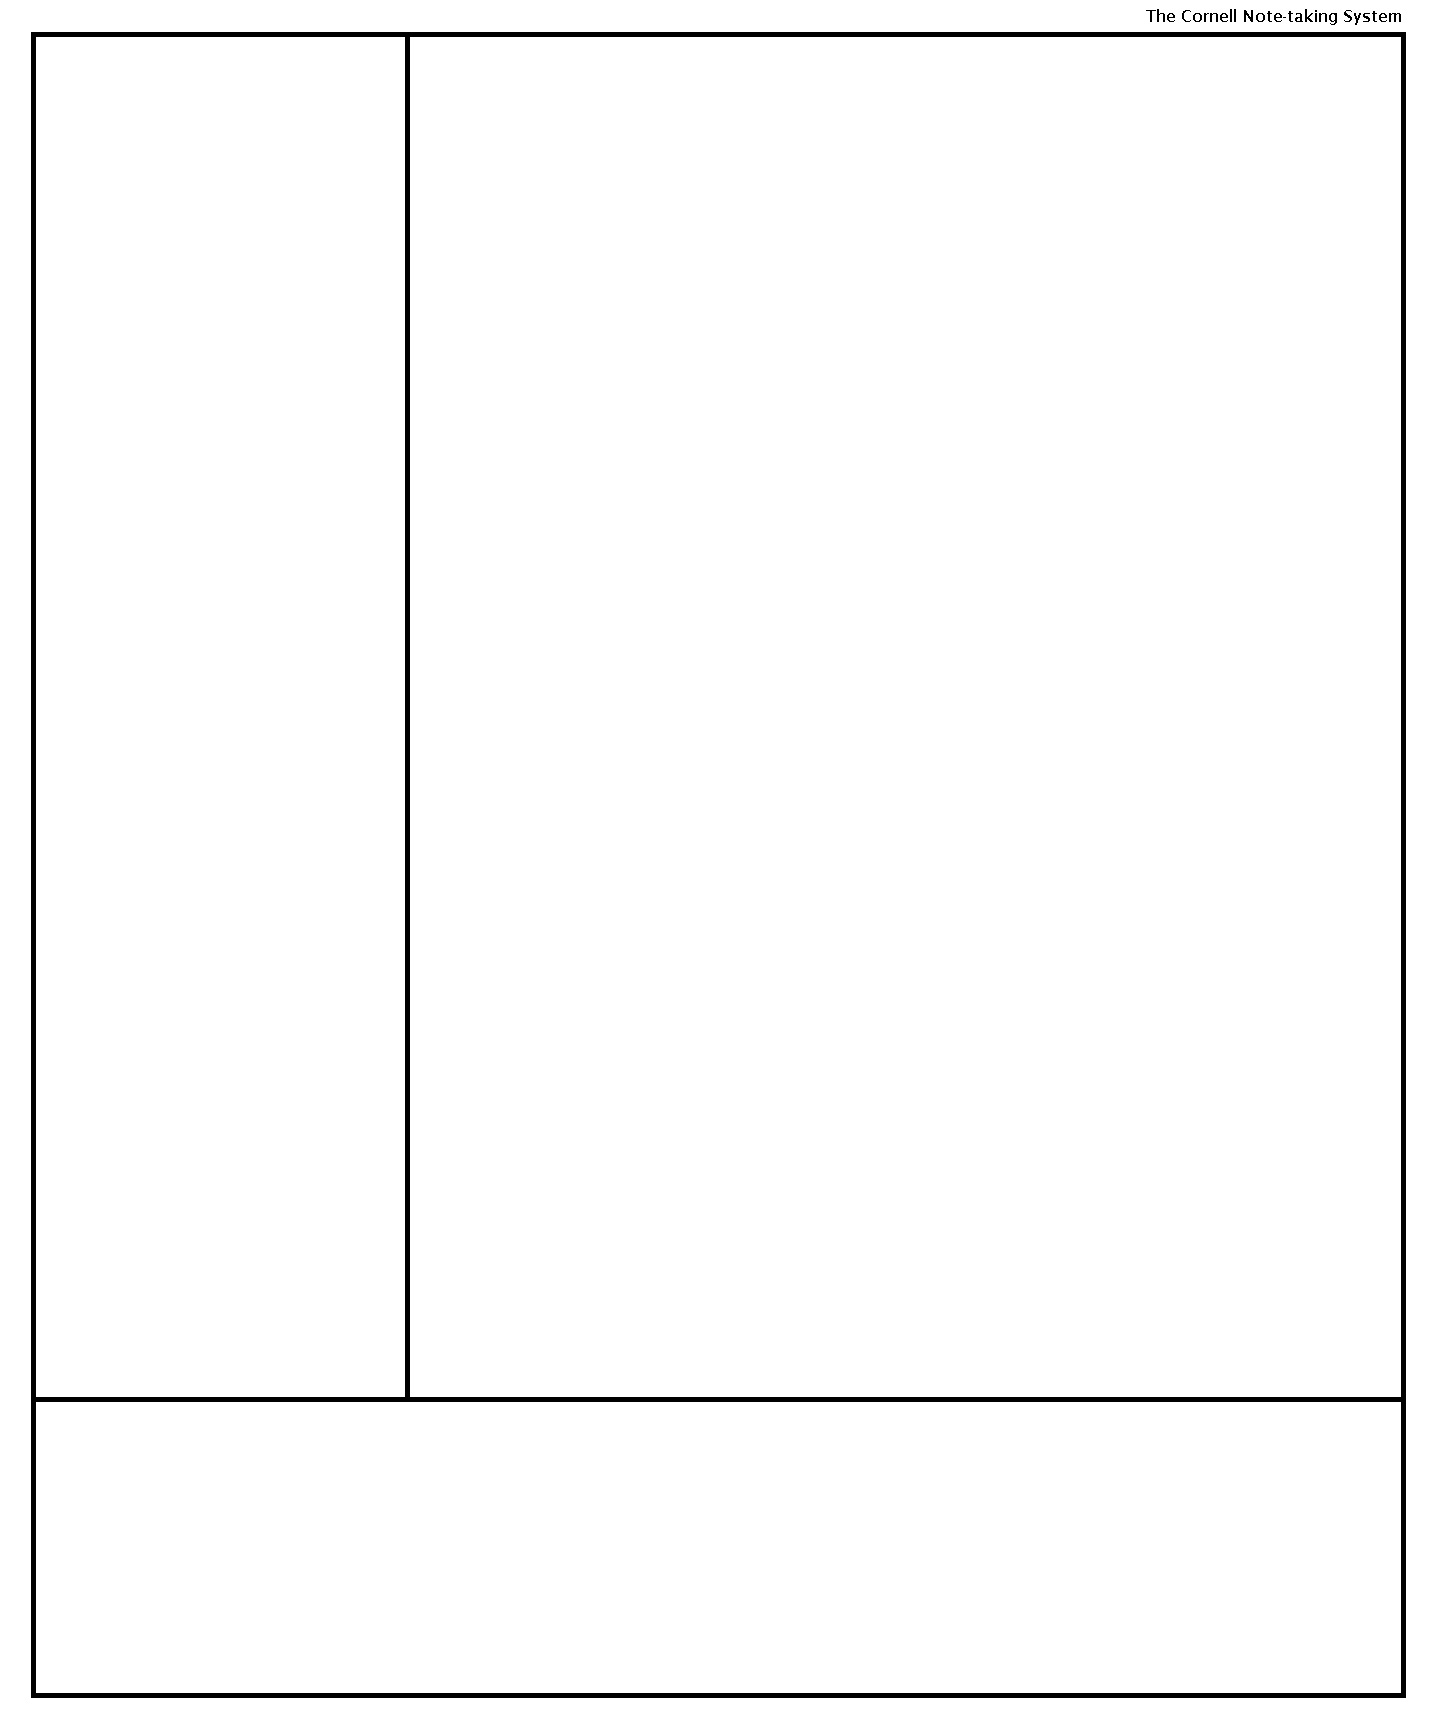 Cornell note taking system template template for penultimate download penutlimate ppr file download template as image sciox Choice Image